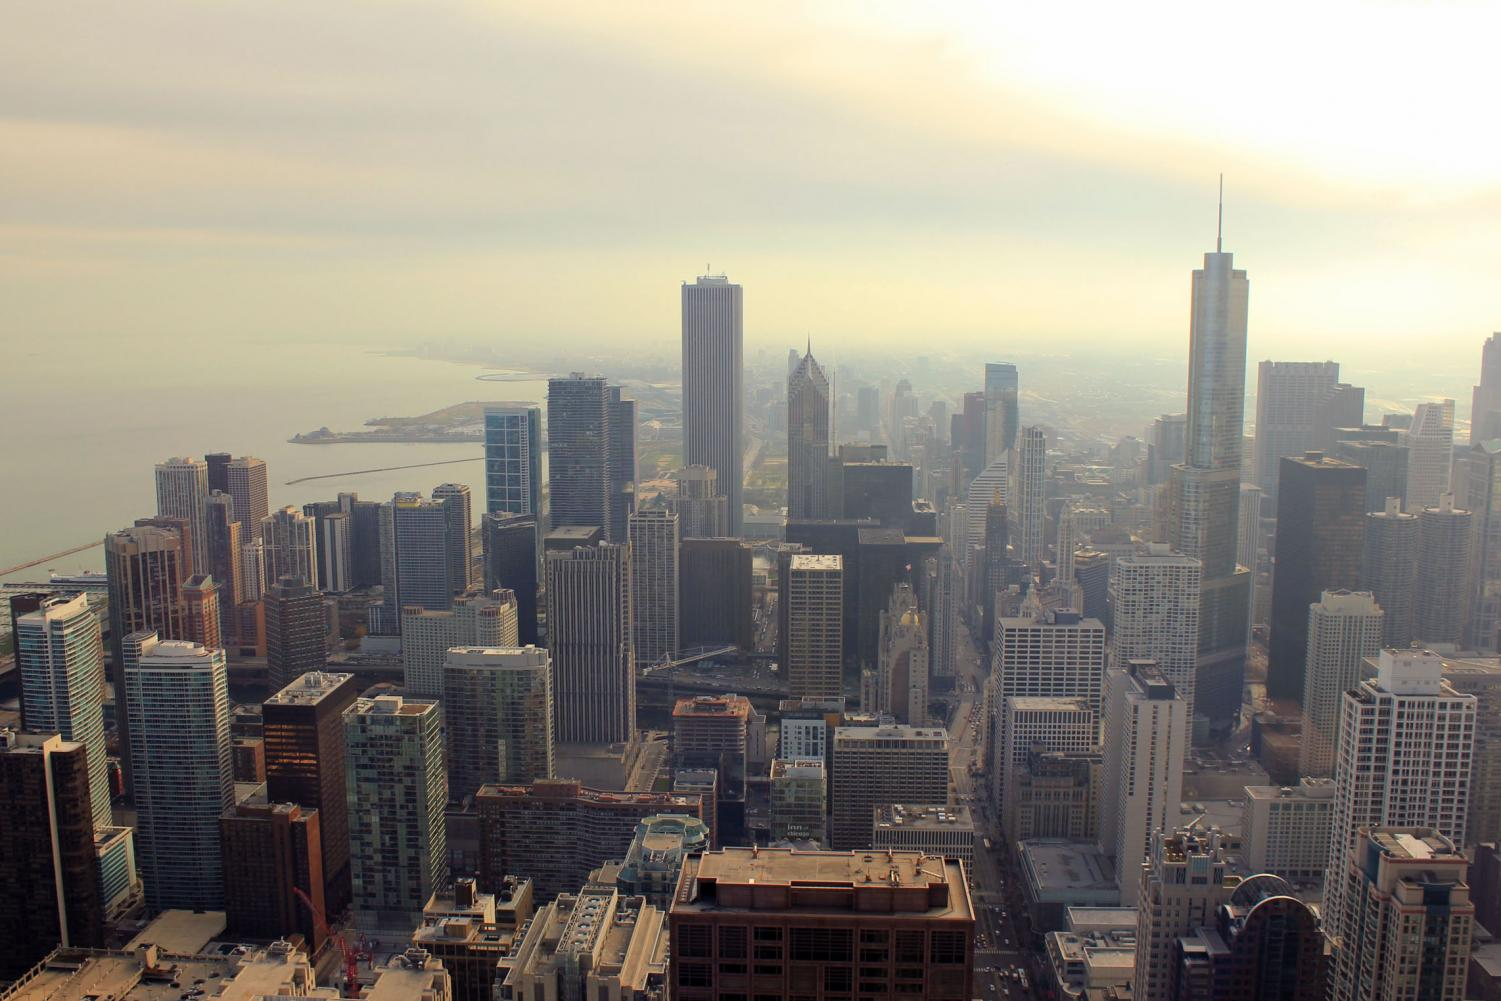 The Chicago city skyline is one you won't soon forget!